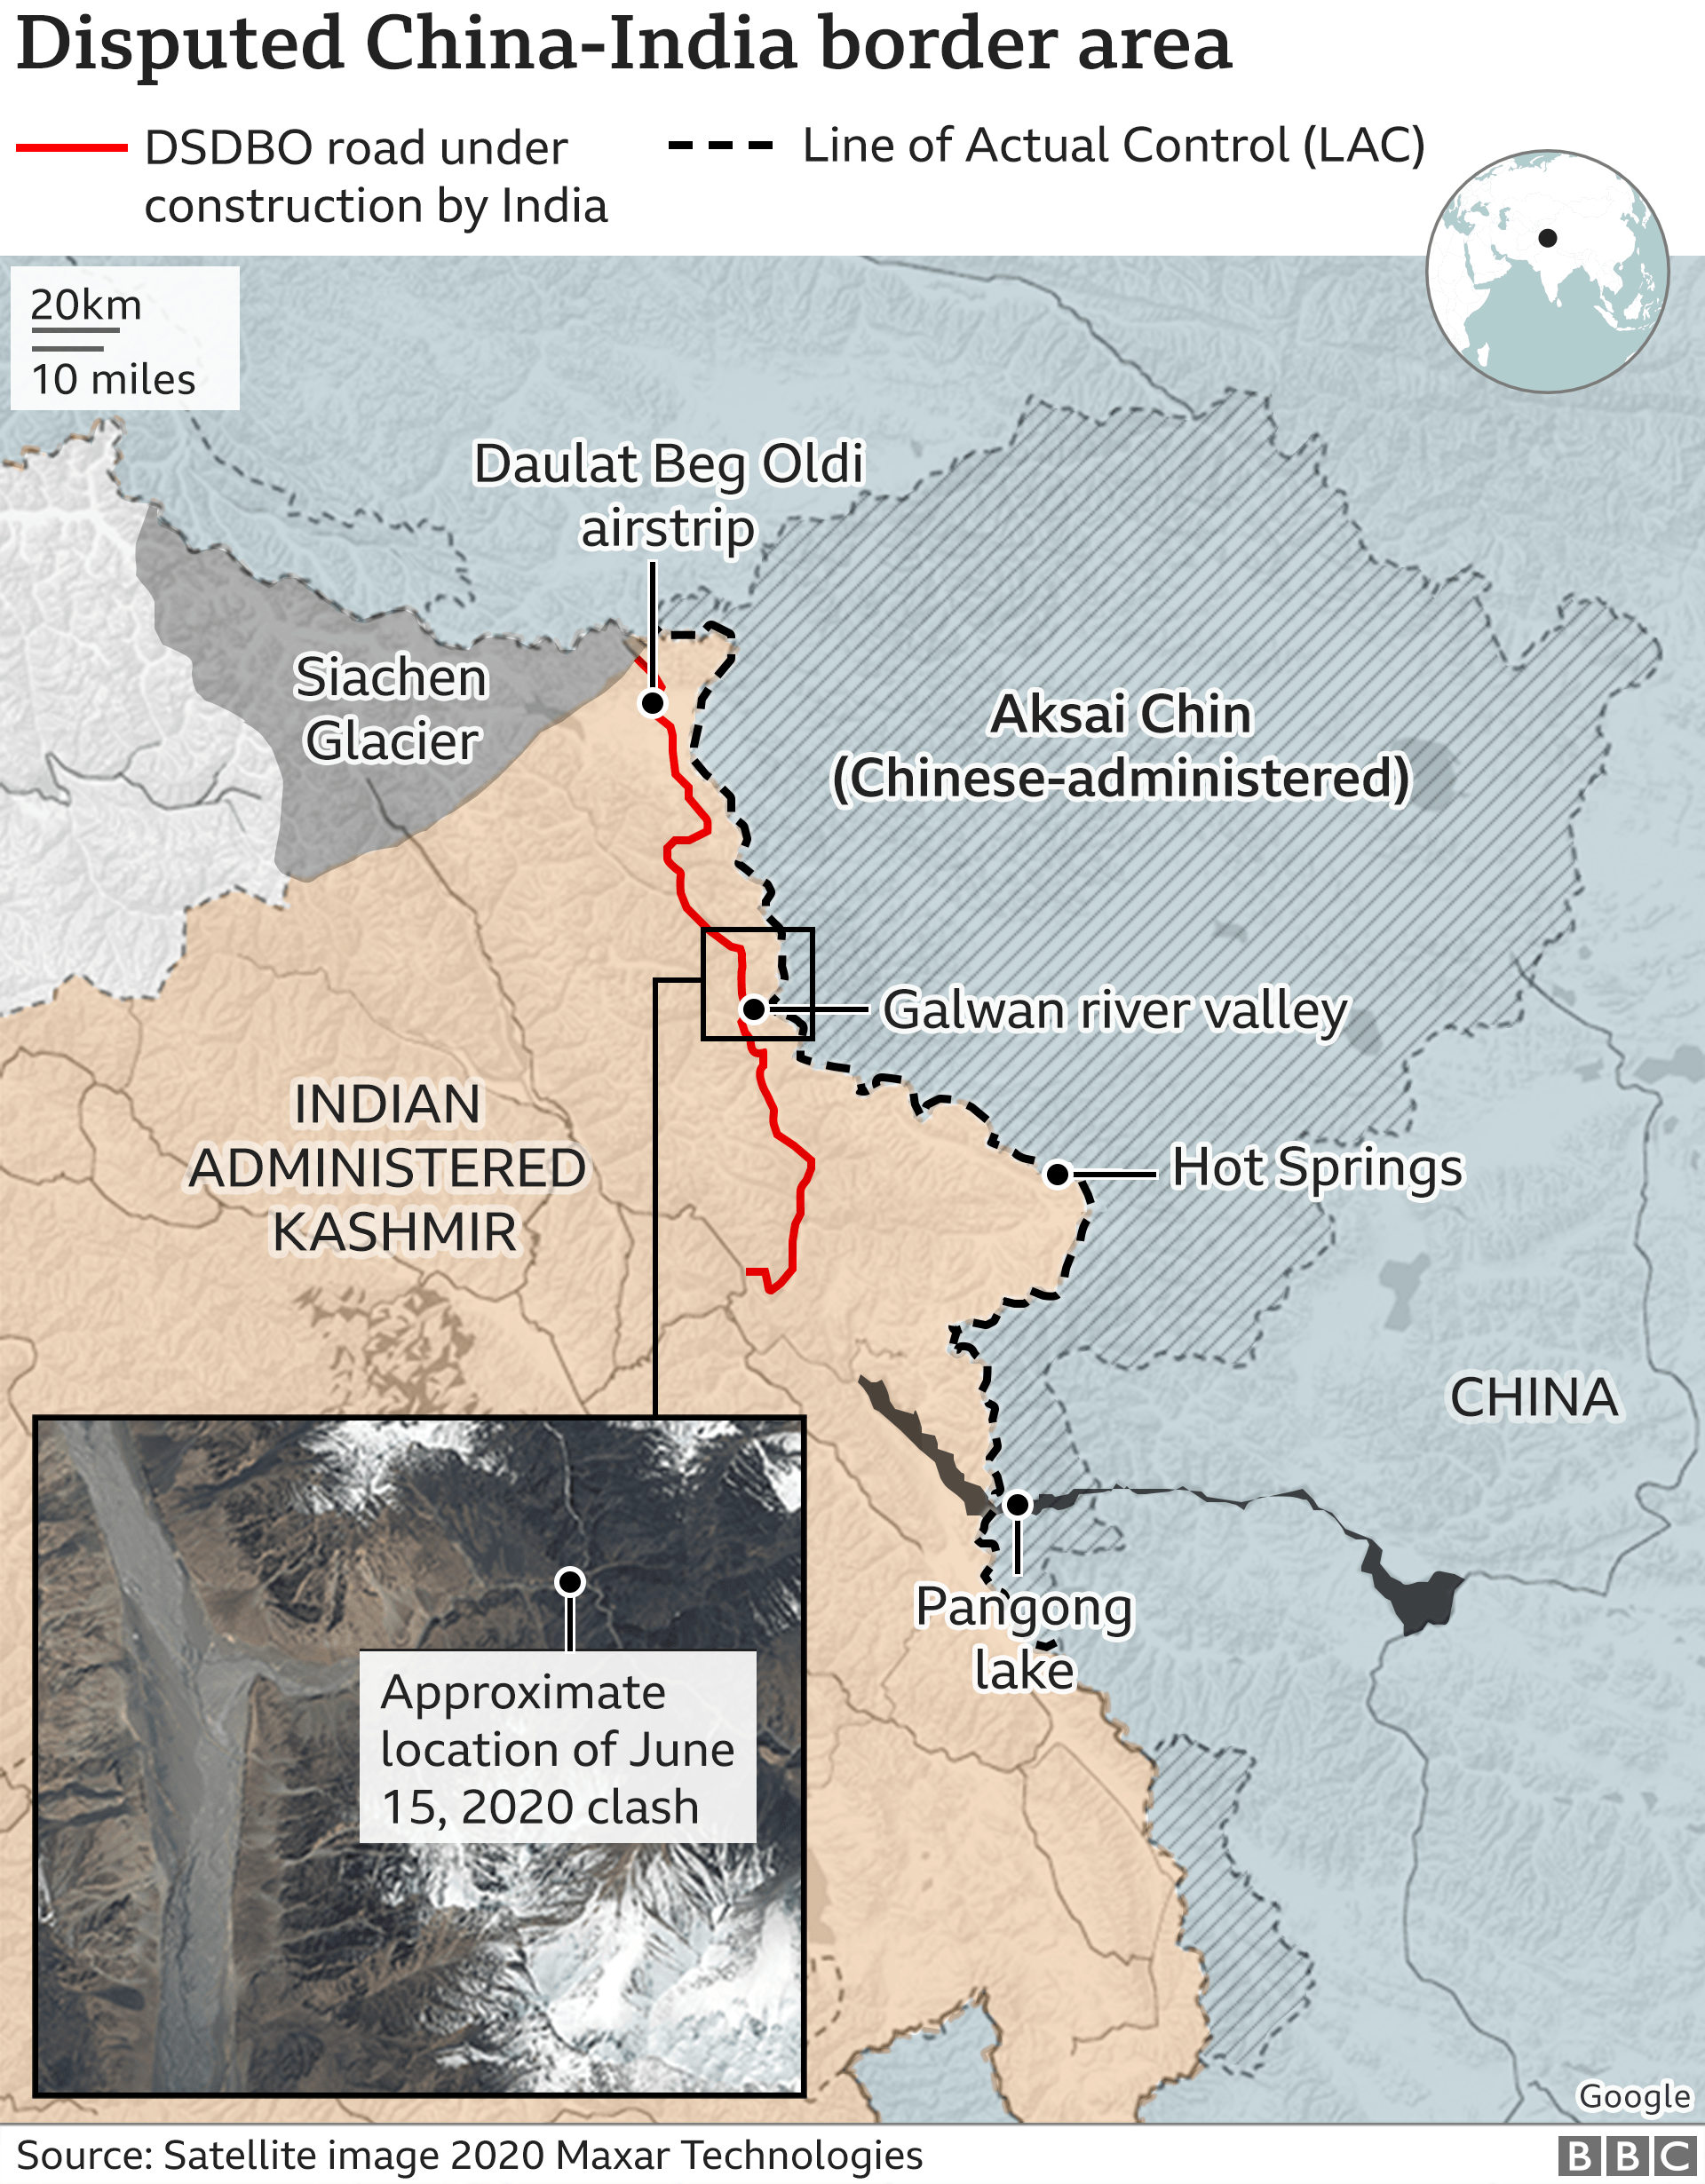 Disputed China-India border map